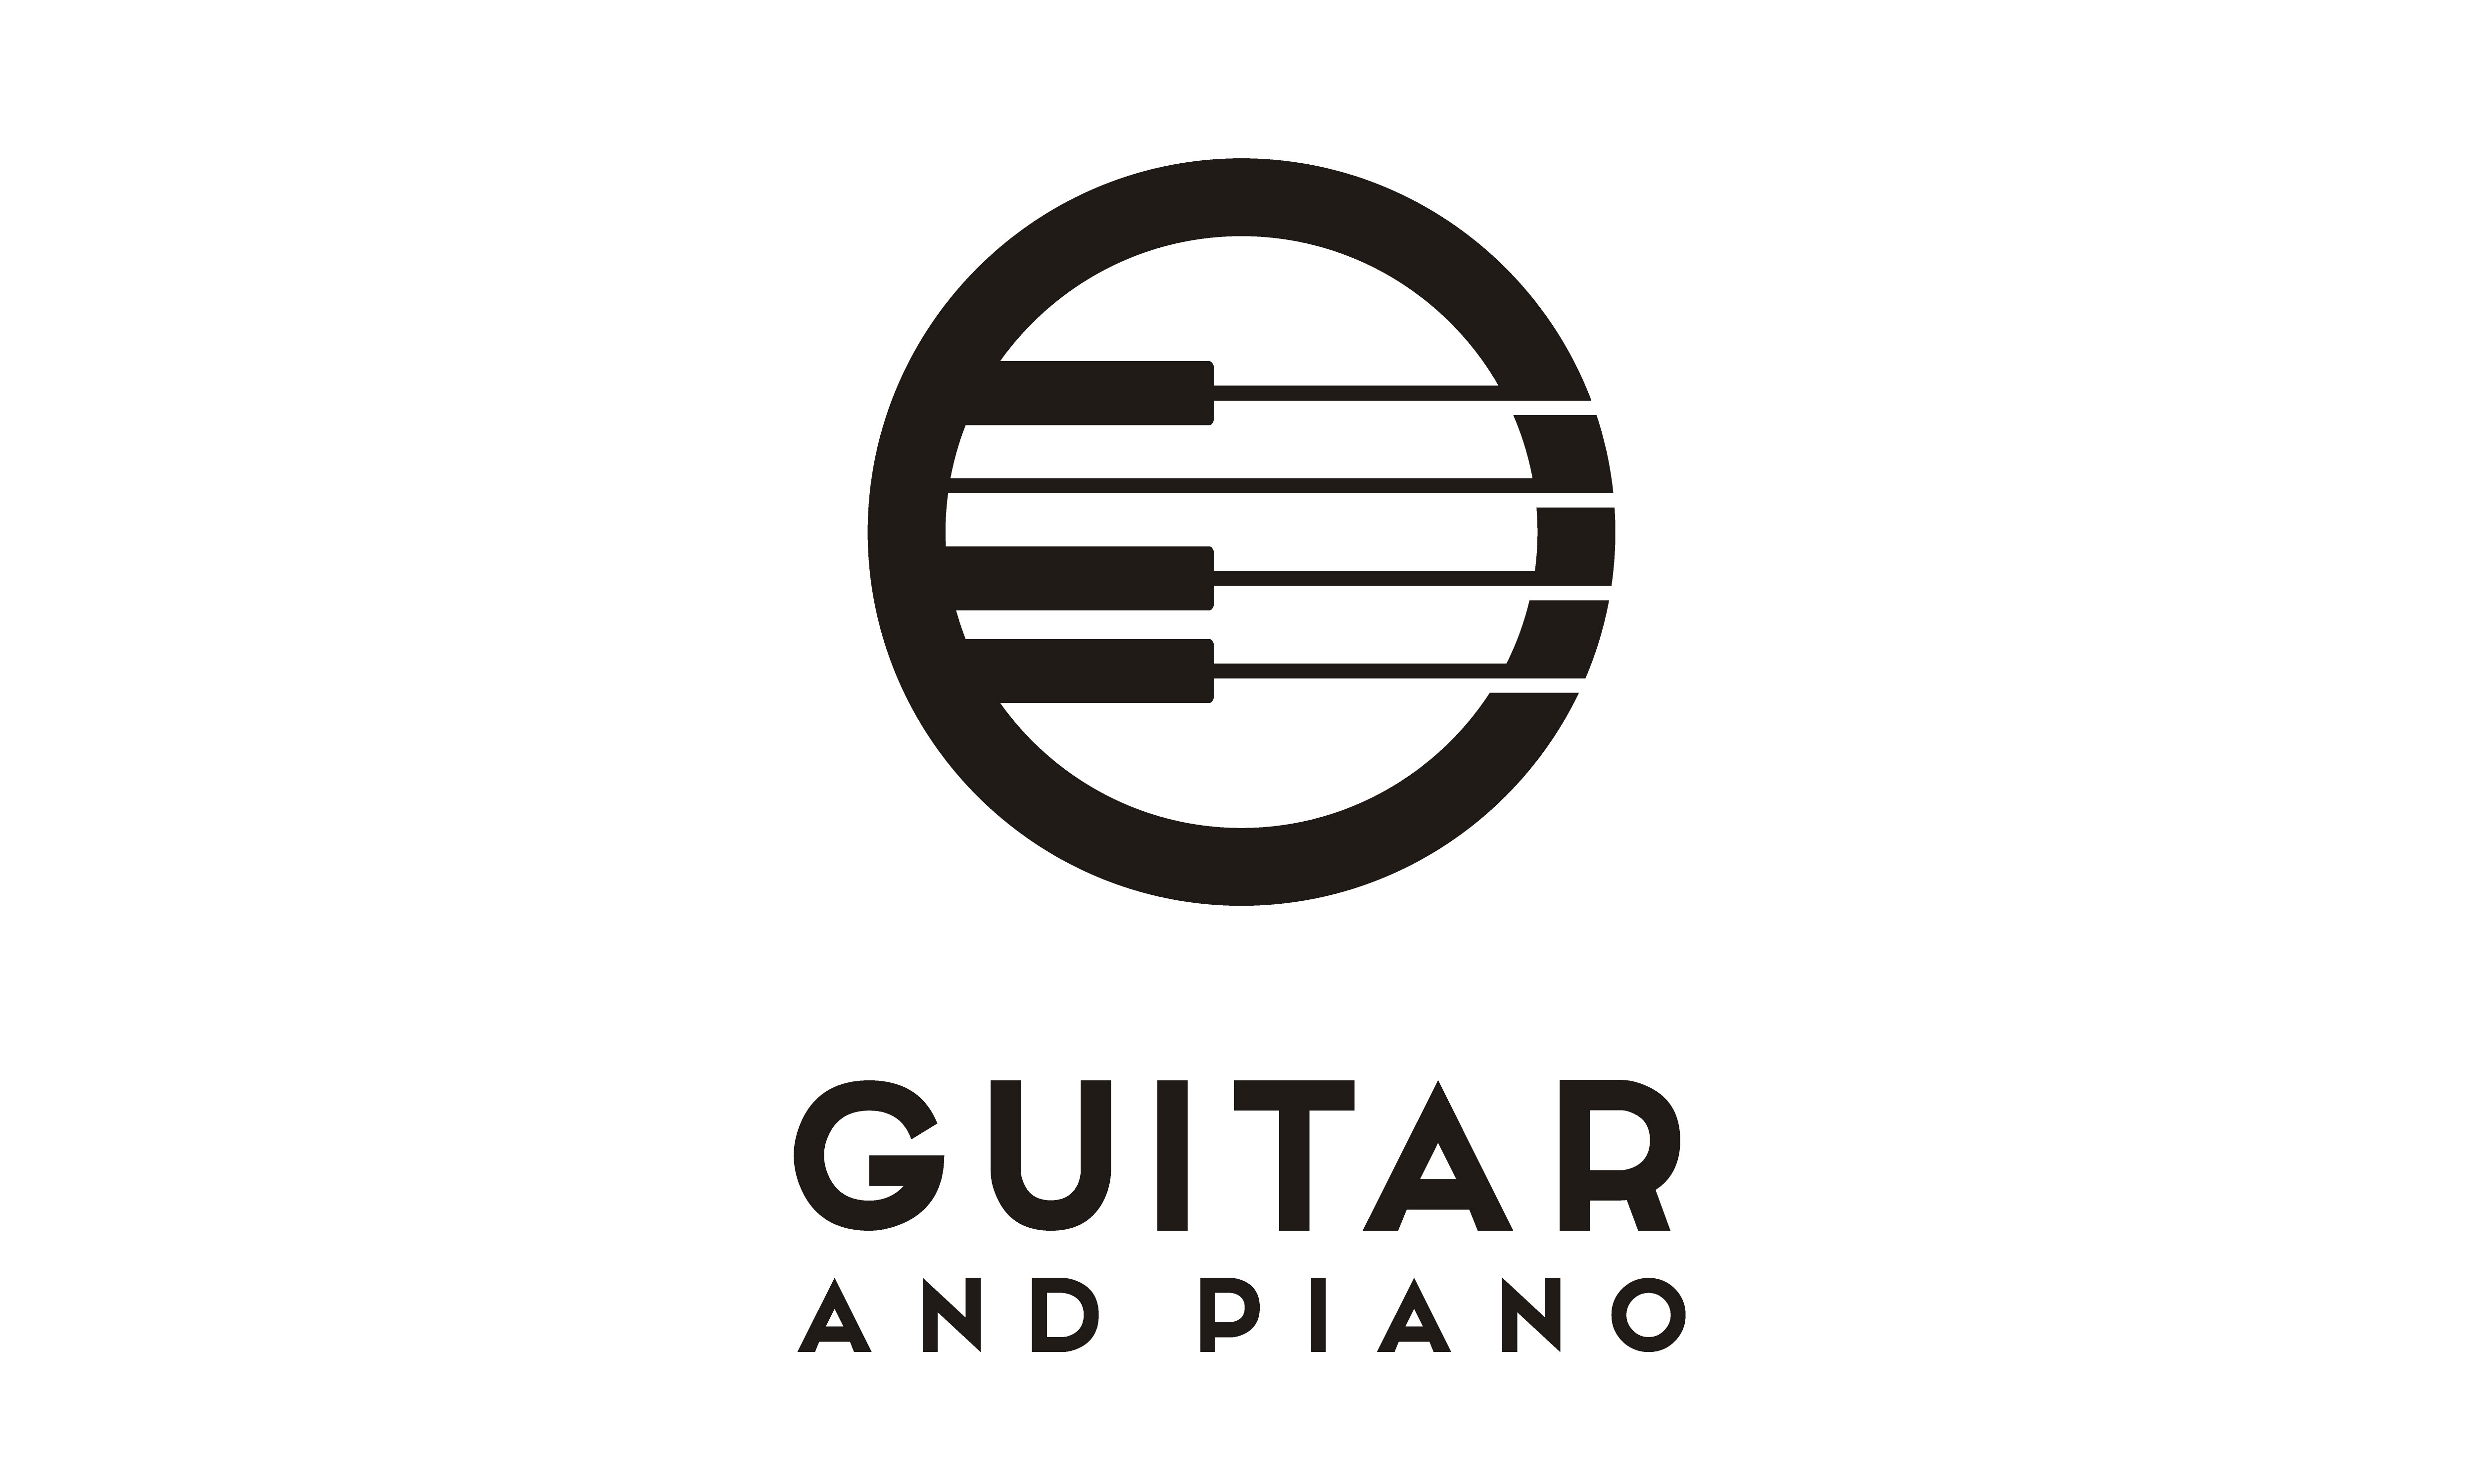 Download Free Guitar Strings And Piano Key Music Logo Graphic By Enola99d for Cricut Explore, Silhouette and other cutting machines.